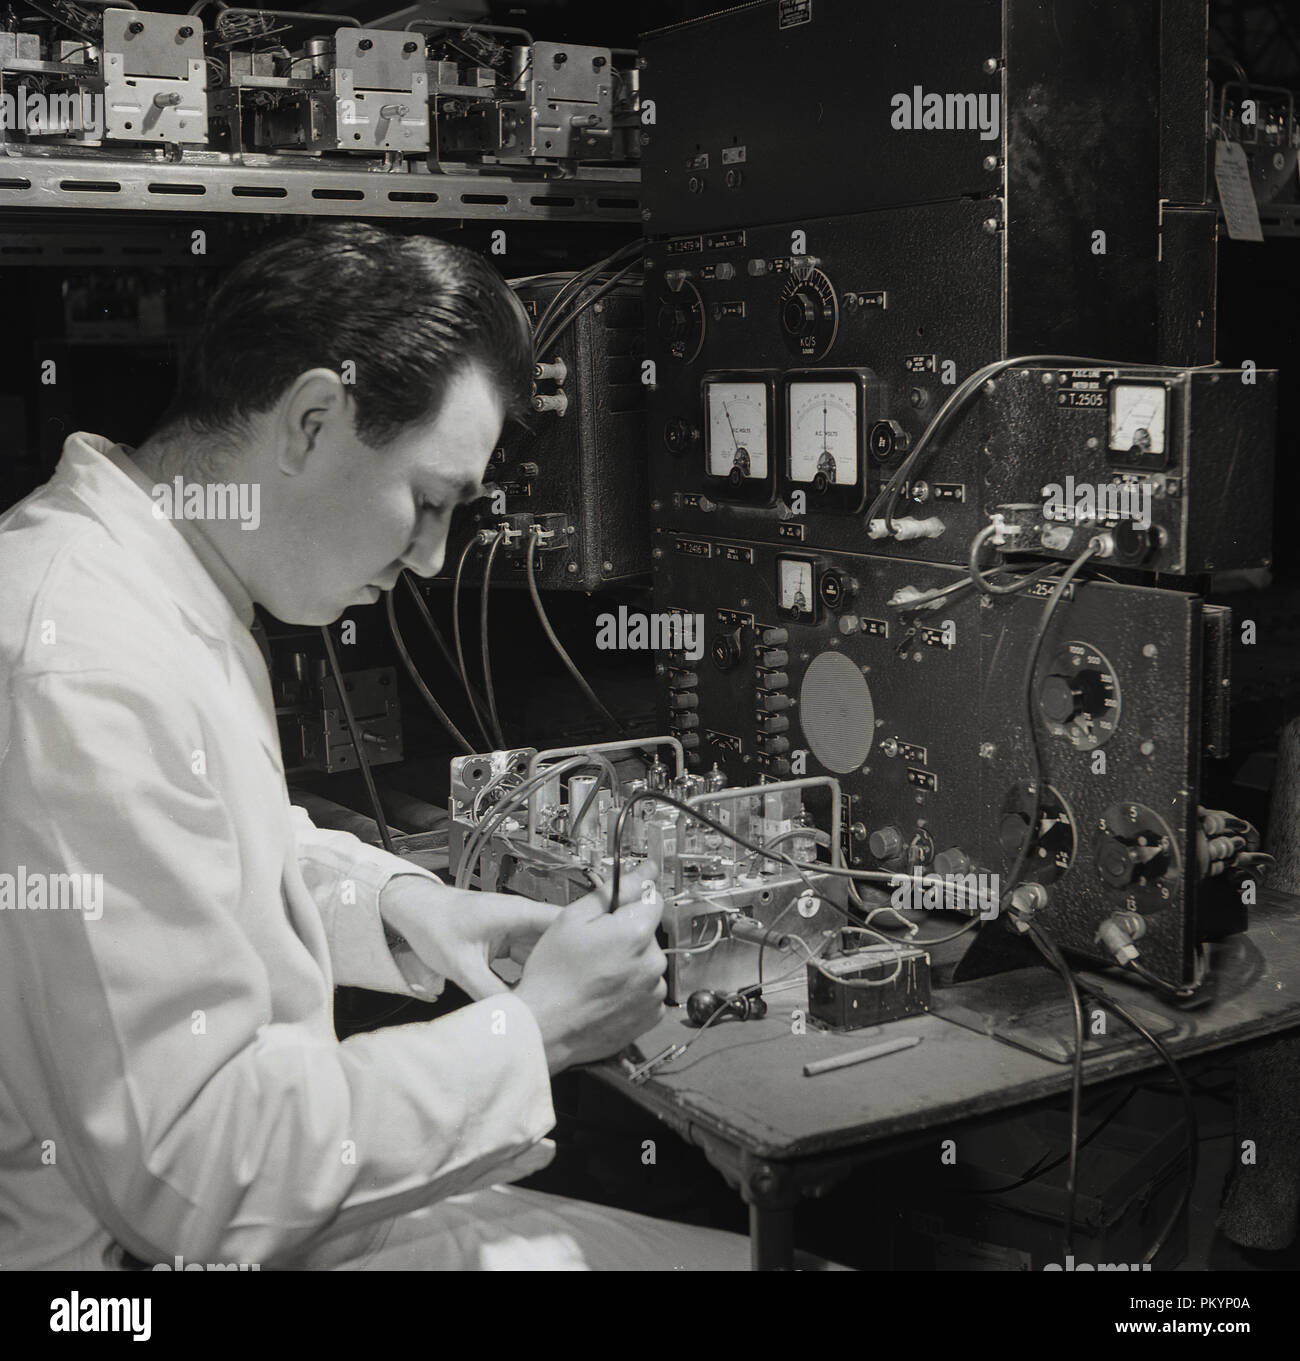 1950s, historical, white-coated male technican testing the internal components of a radio receiver at Bush Radio, a leading British consumer electronics company in this era. - Stock Image